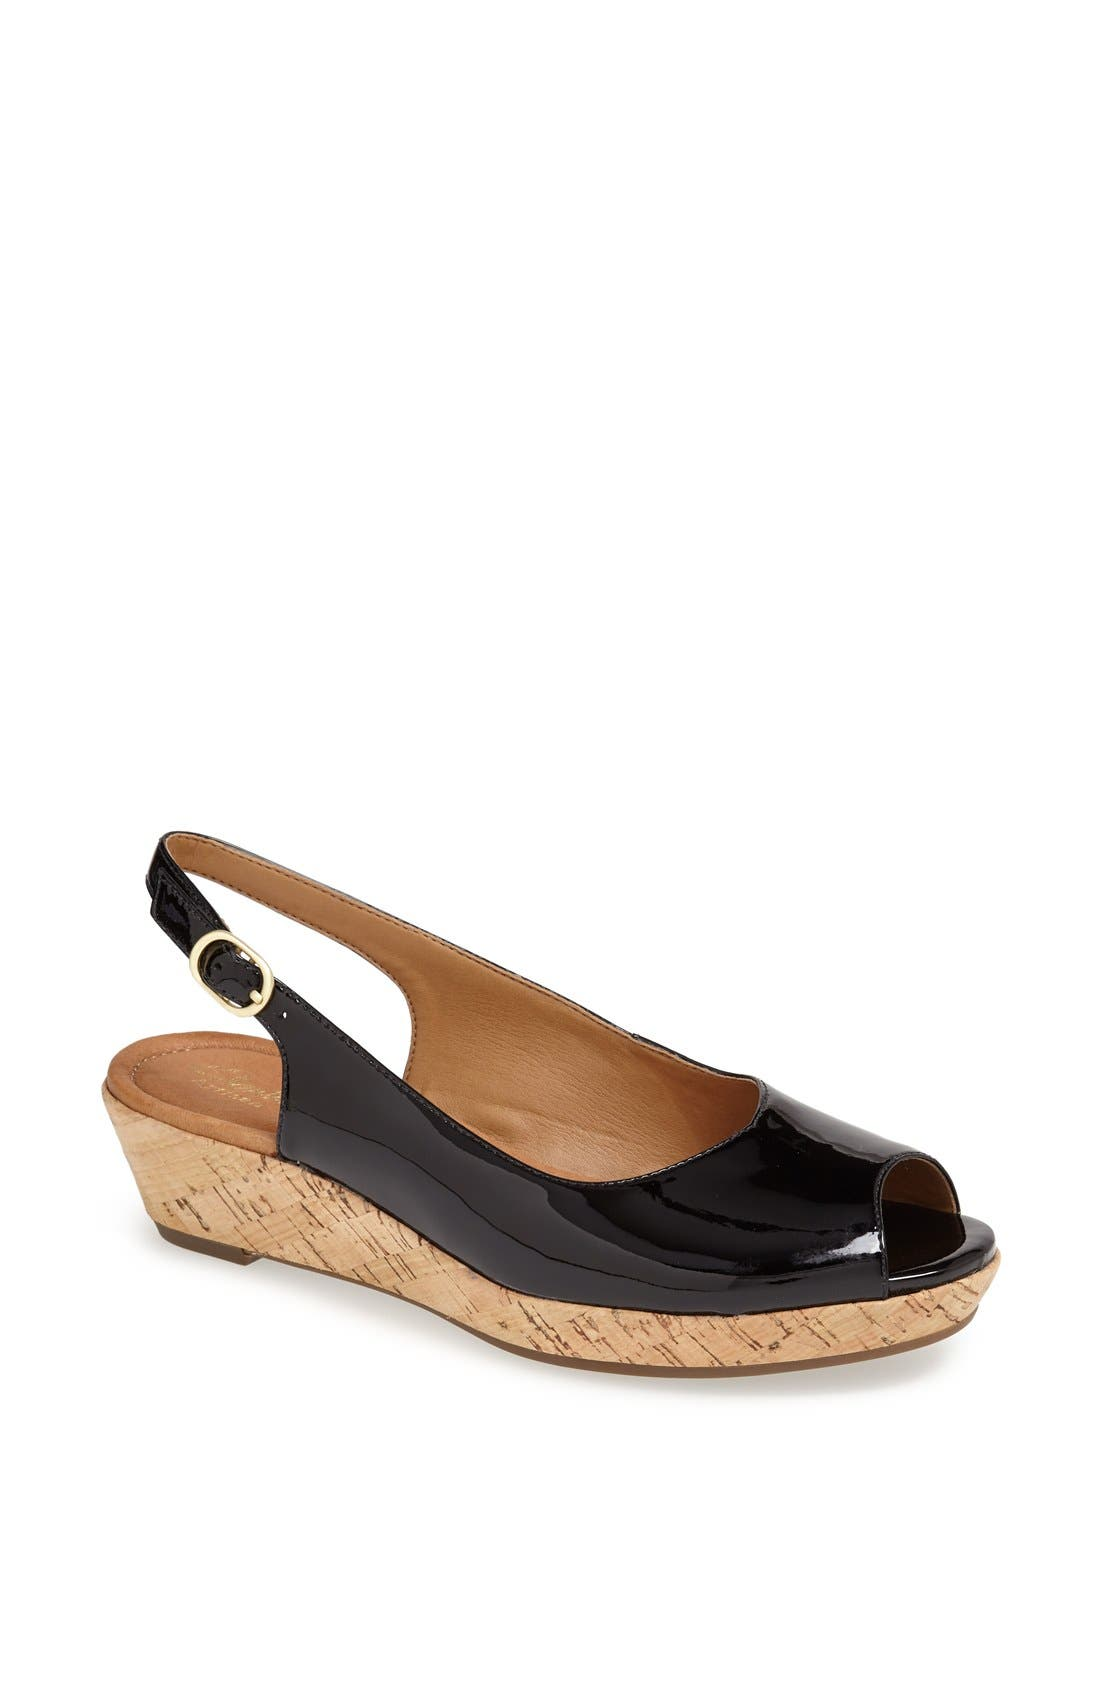 Main Image - Clarks® 'Orlena Currant' Sandal (Regular Retail Price: $99.95)